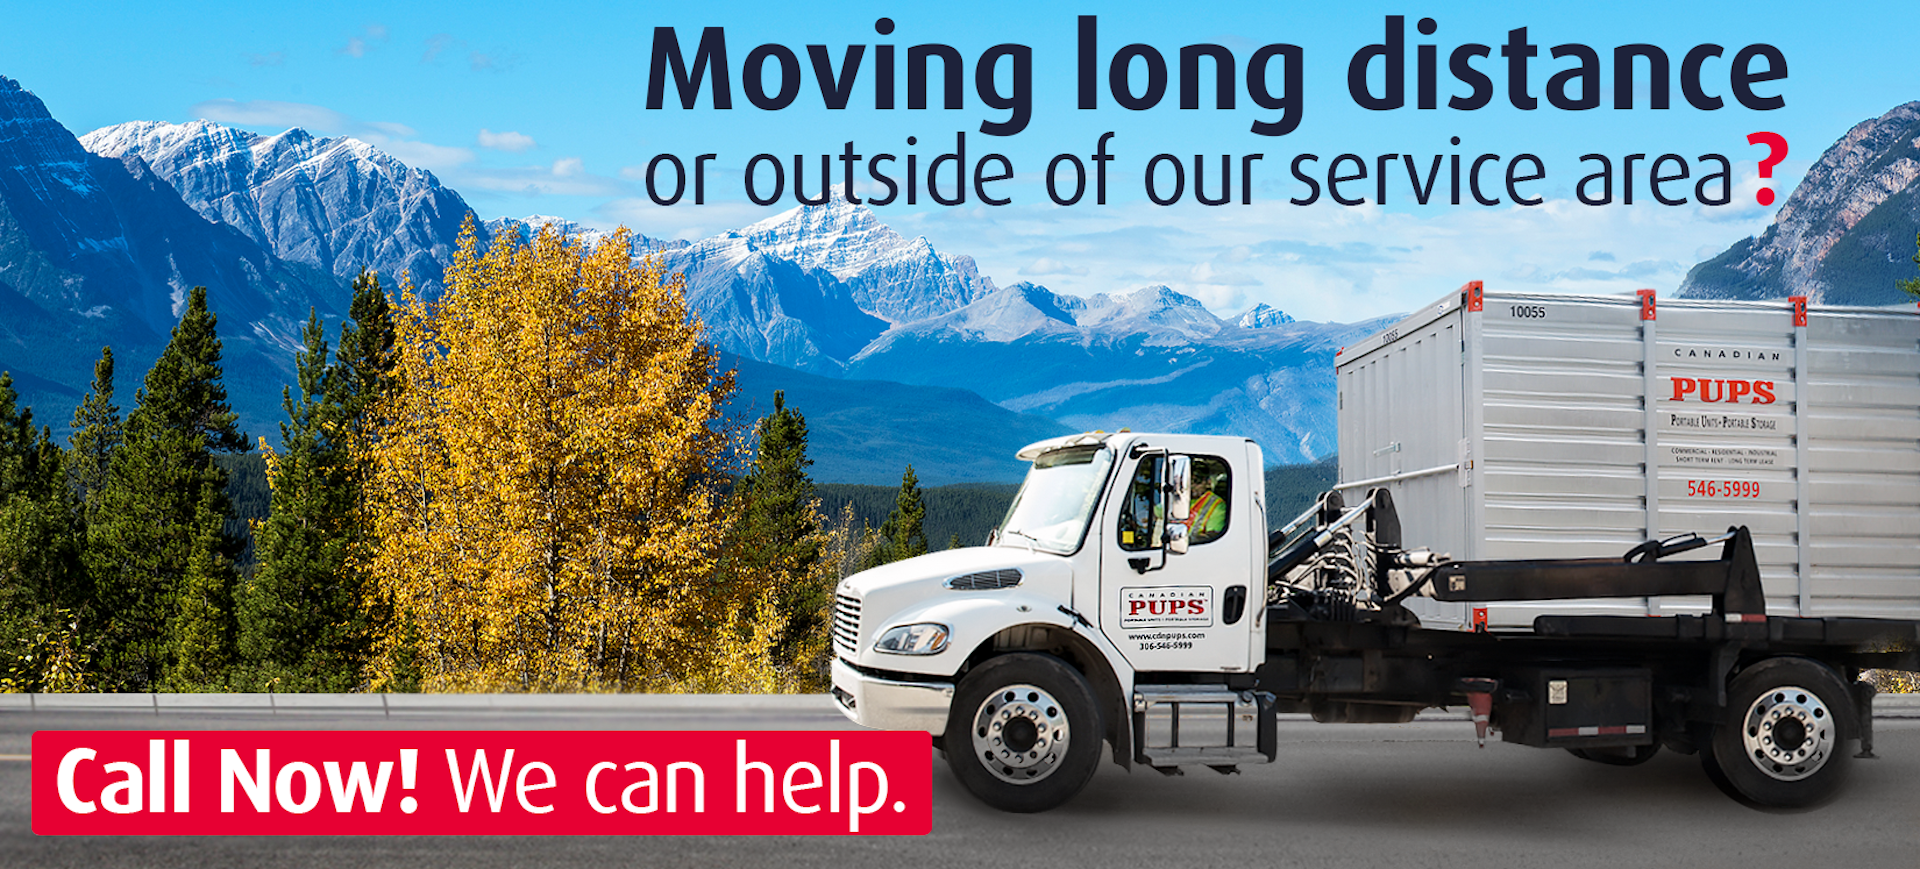 Moving long distance or outside of our service area?